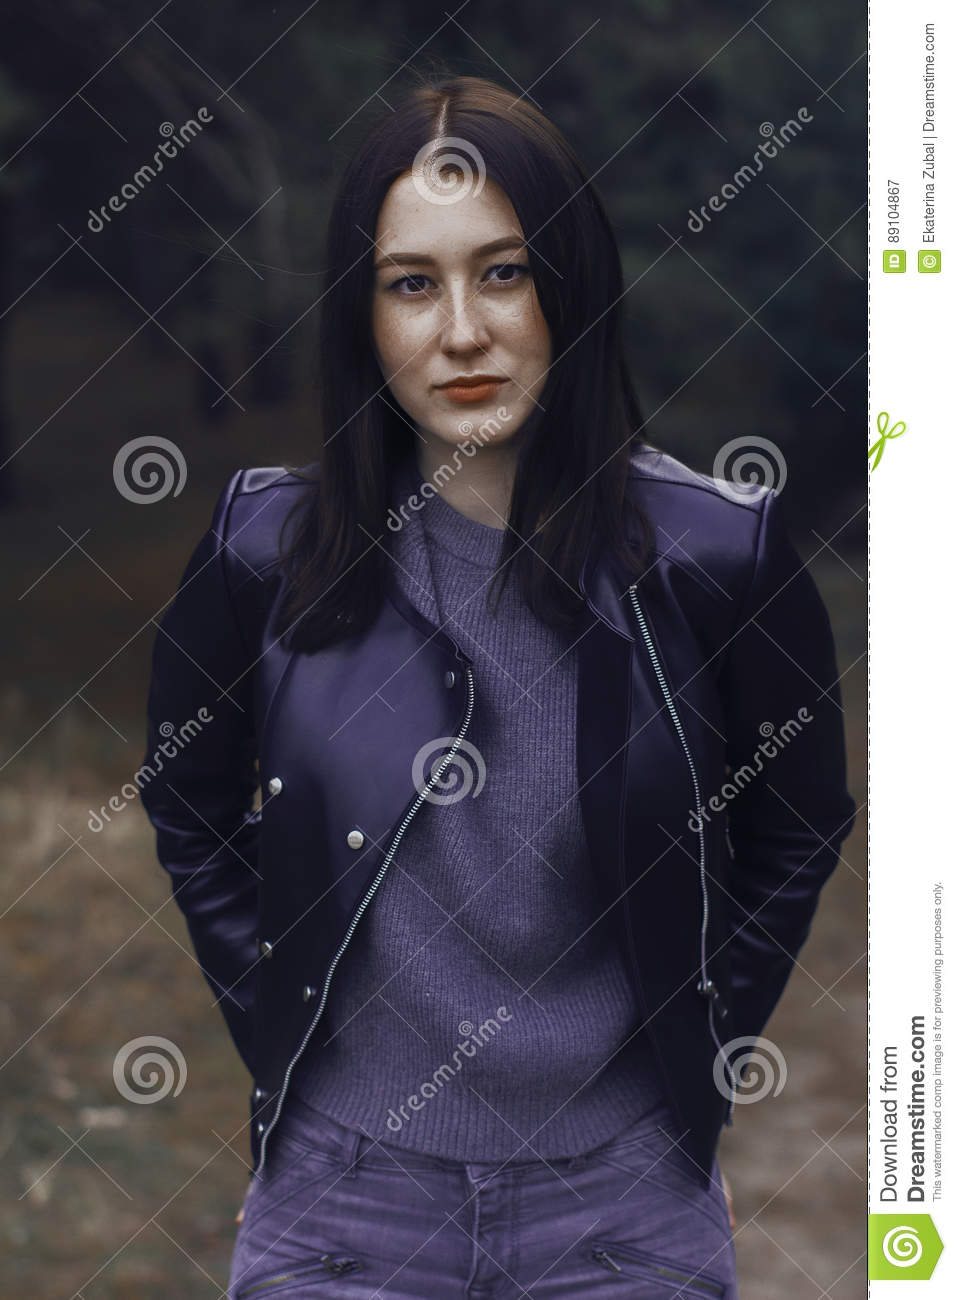 fc3b1511e357d Girl with dark hair in the forest. She wears a black leather jacket and  gray jeans. A woman of model appearance stylishly dressed.